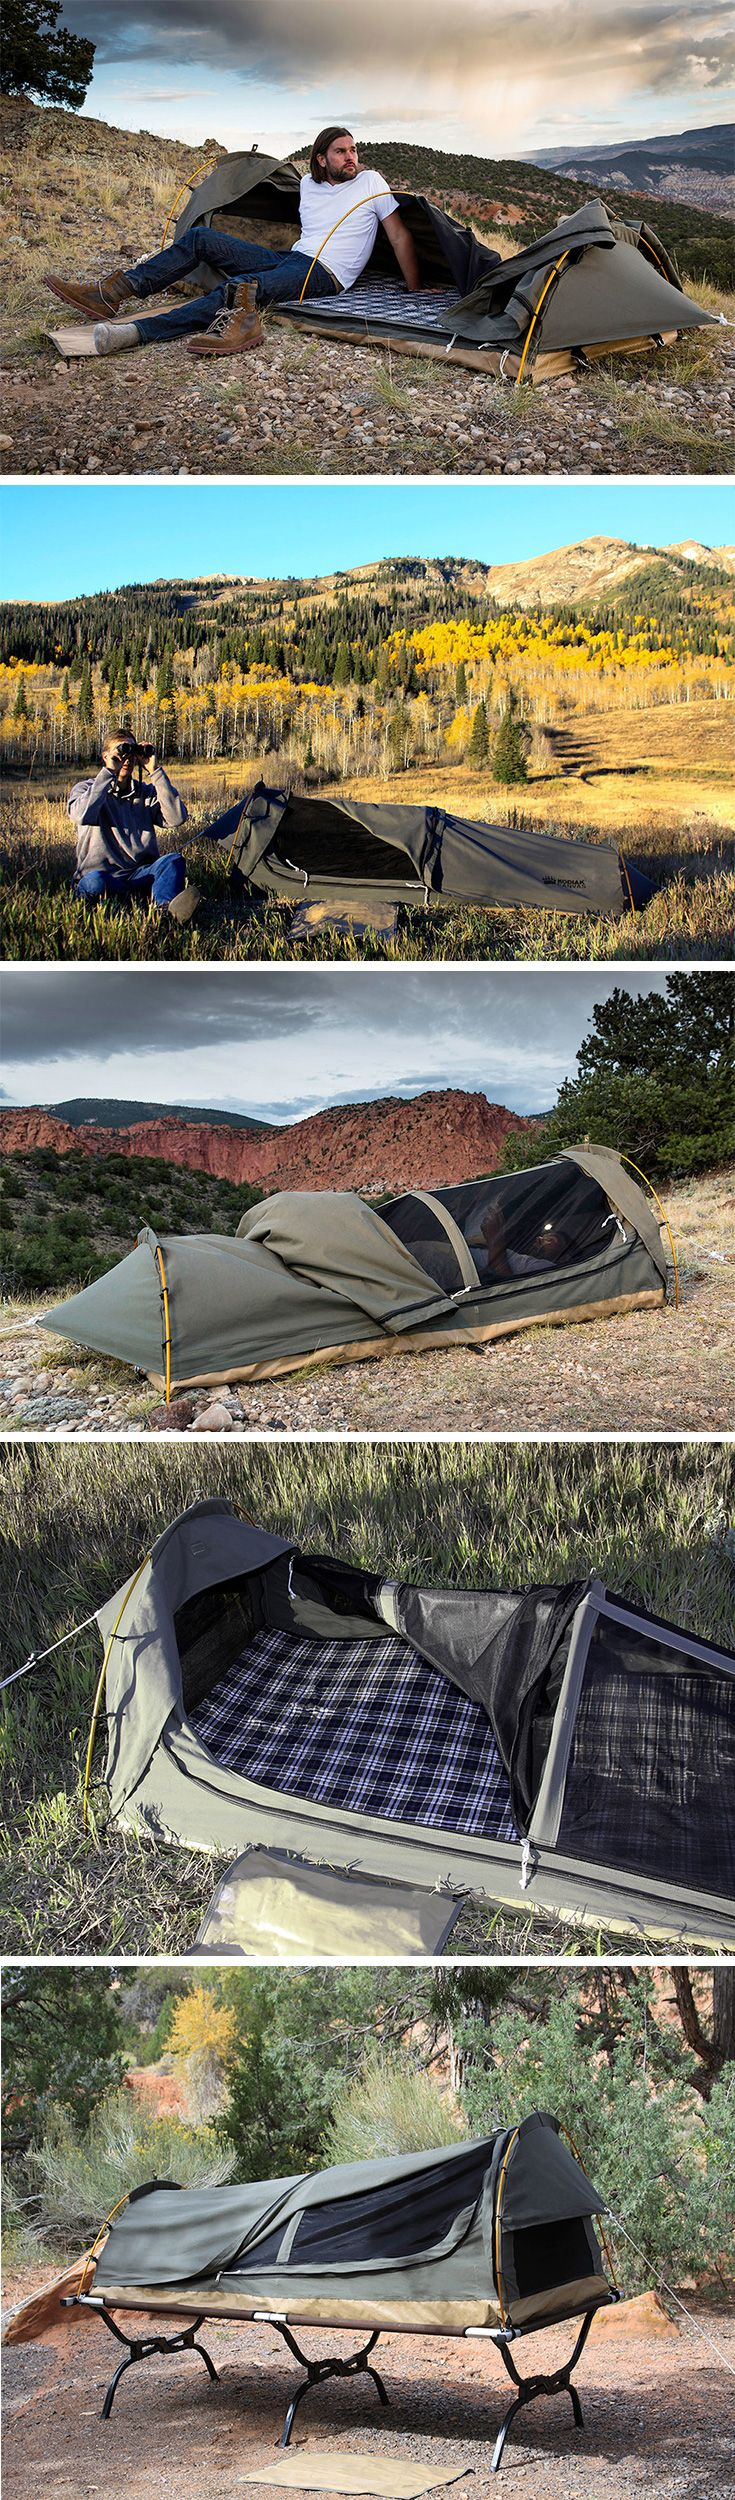 Perfect for spur-of-the-moment adventures, the Kodiak Canvas Swag Tent is compact camping you can count on! An evolution of the traditional bedroll, this single person, portable sleep system rolls up to the size of a backpack to go just about anywhere. Made of water-wicking cotton canvas, it's completely weatherproof. When it's time to go, the Swag packs up in no time! BUY NOW!